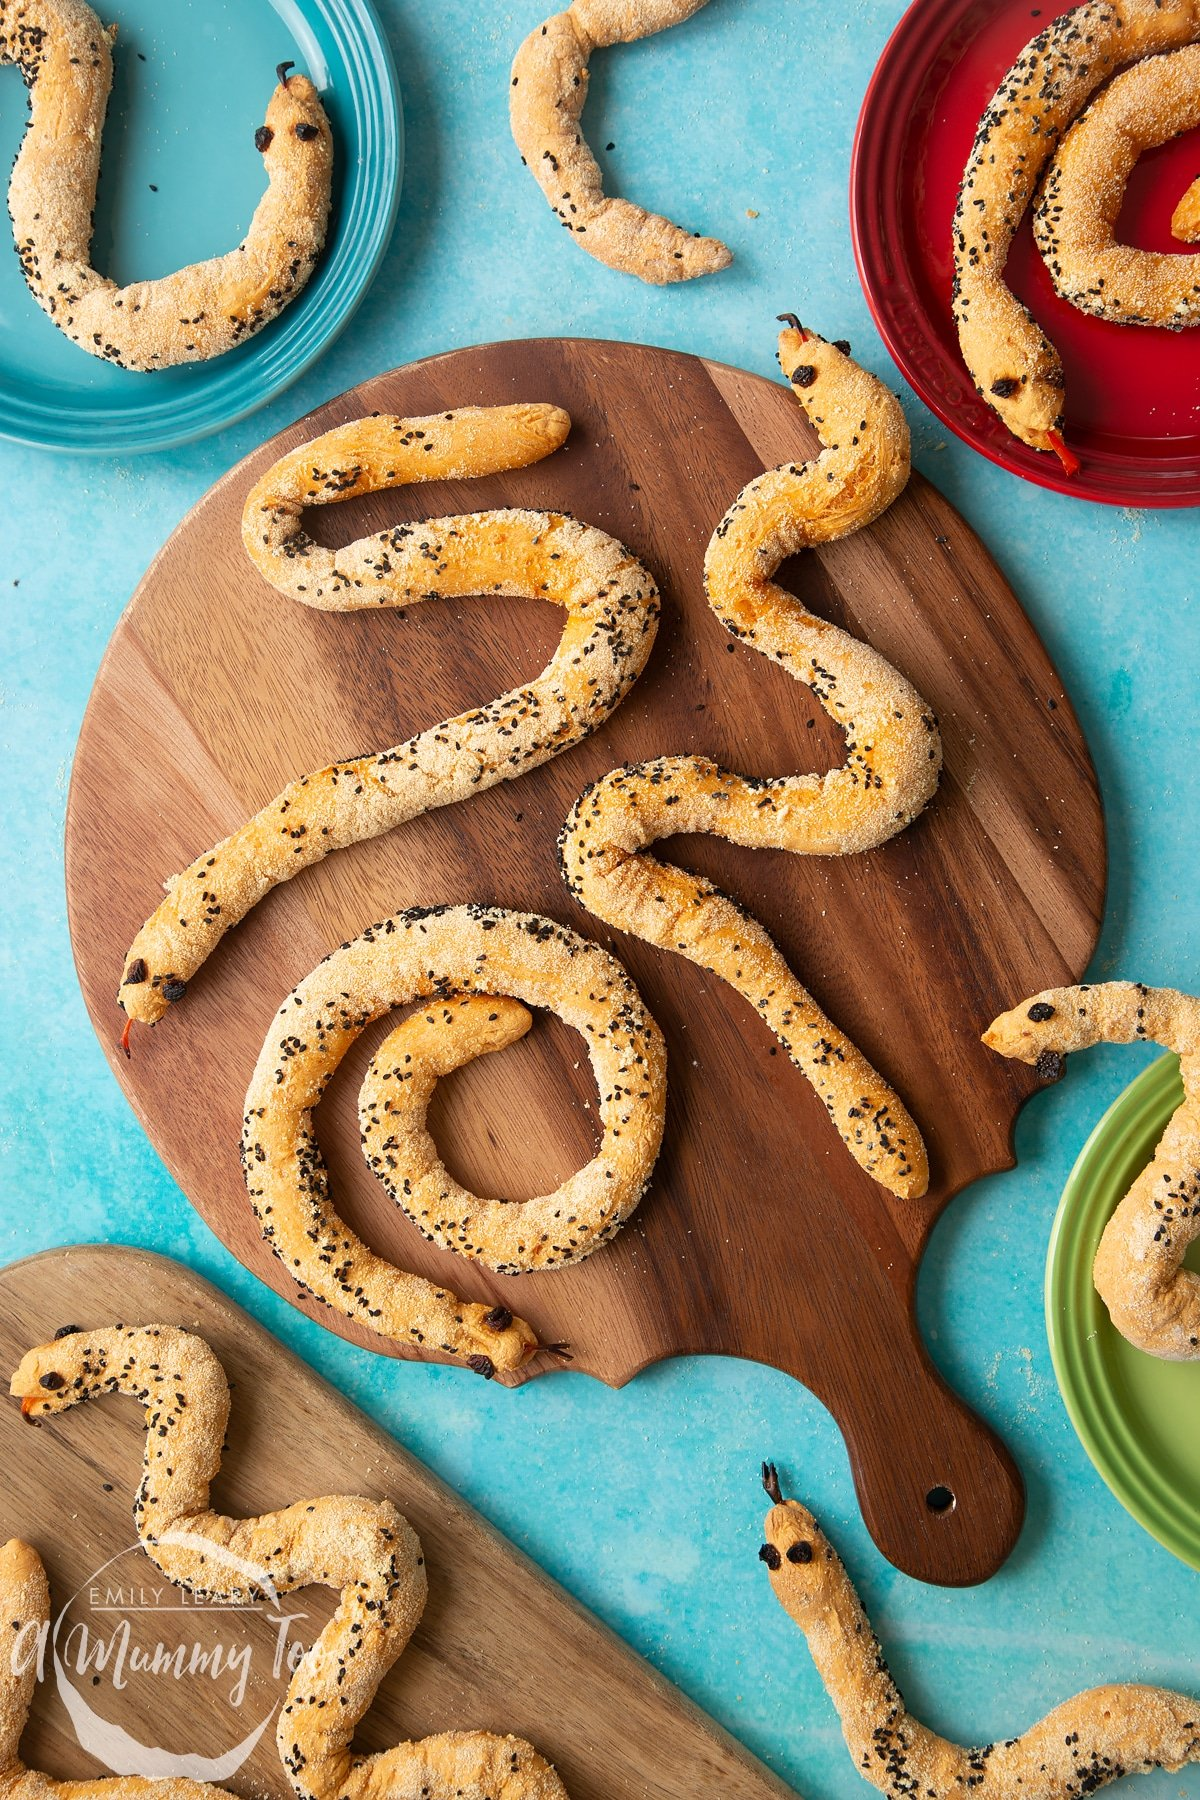 Bread snakes on a wooden board. More bread snakes are shown on coloured plates at the edges of the photo. each of the snakes wiggles in a different shape.